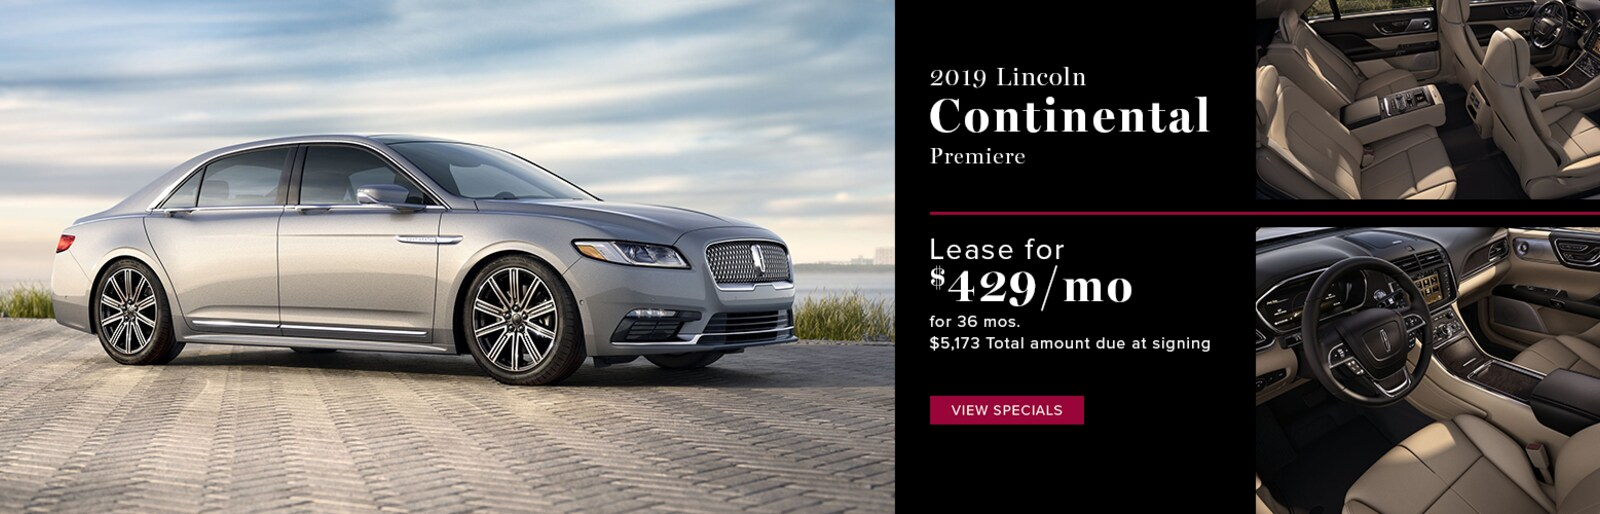 Lincoln Dealership Houston >> Bayway Lincoln   New & Pre-Owned Lincoln Sales in Houston, TX